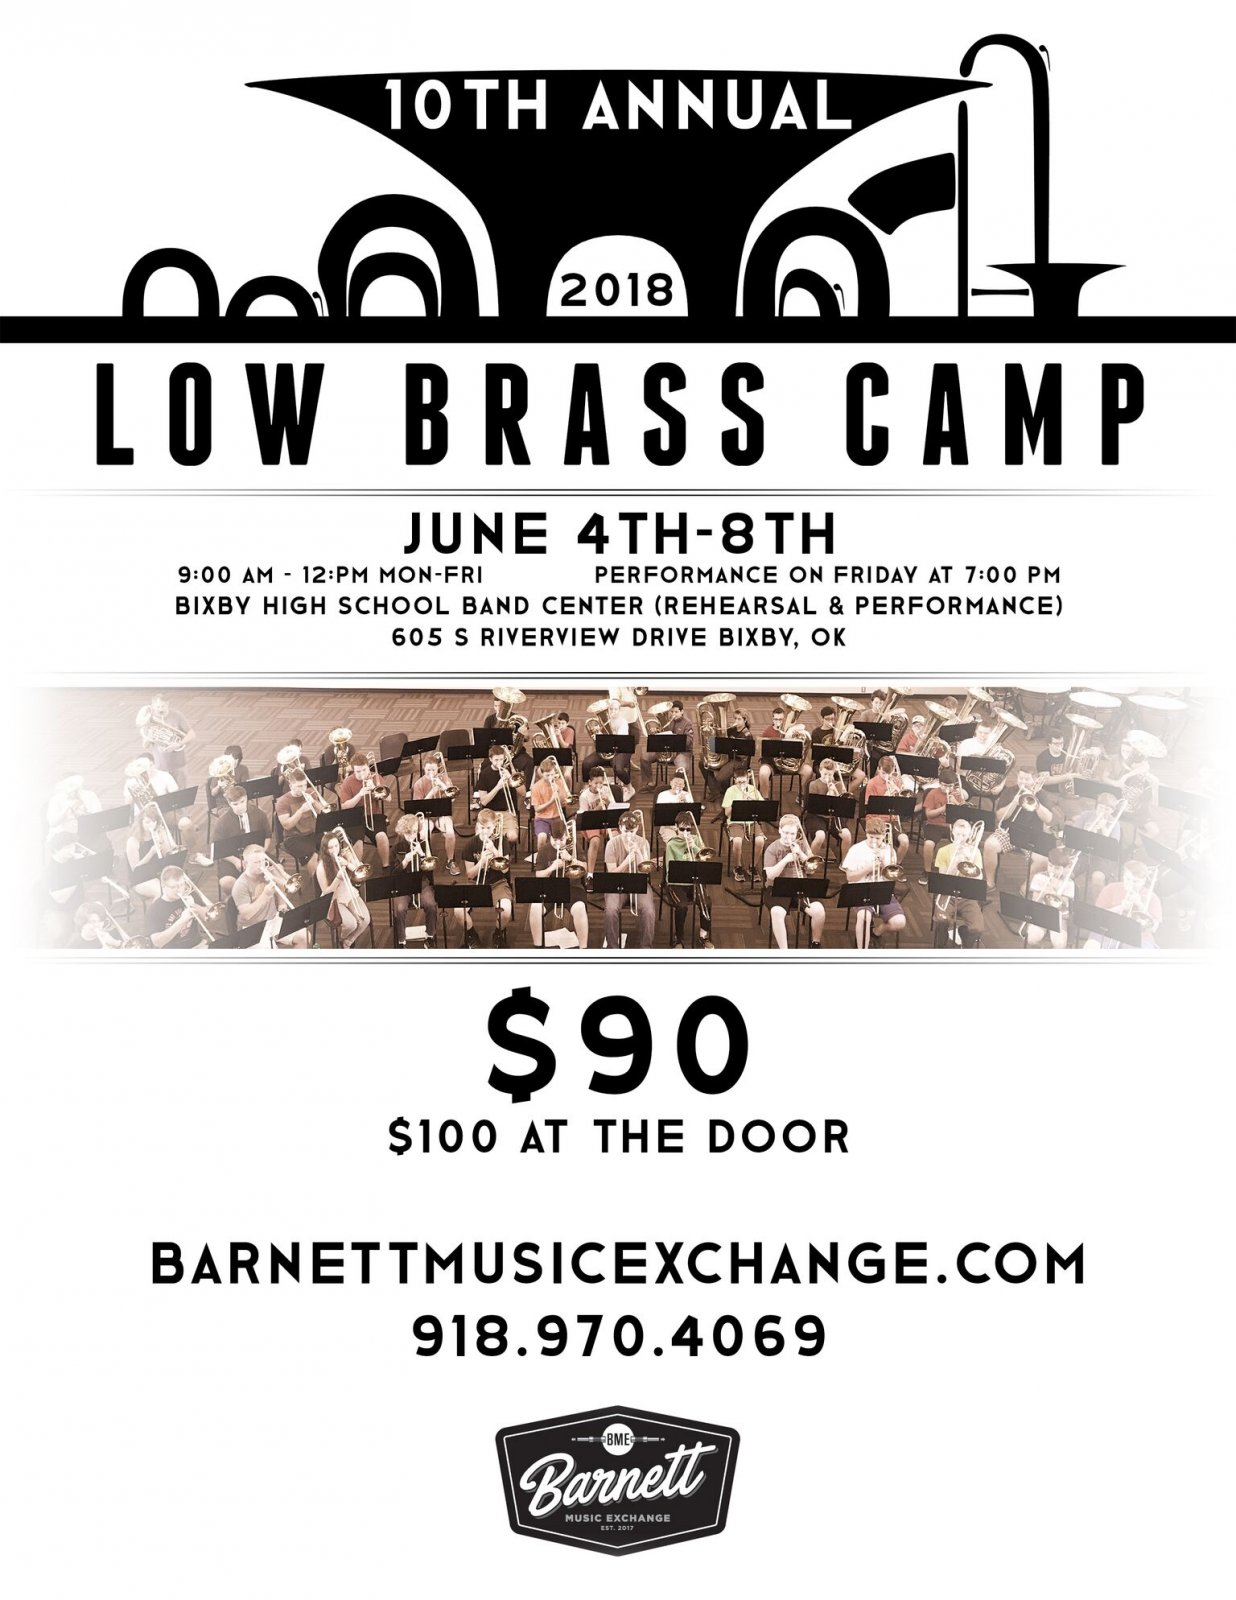 Low Brass Camp